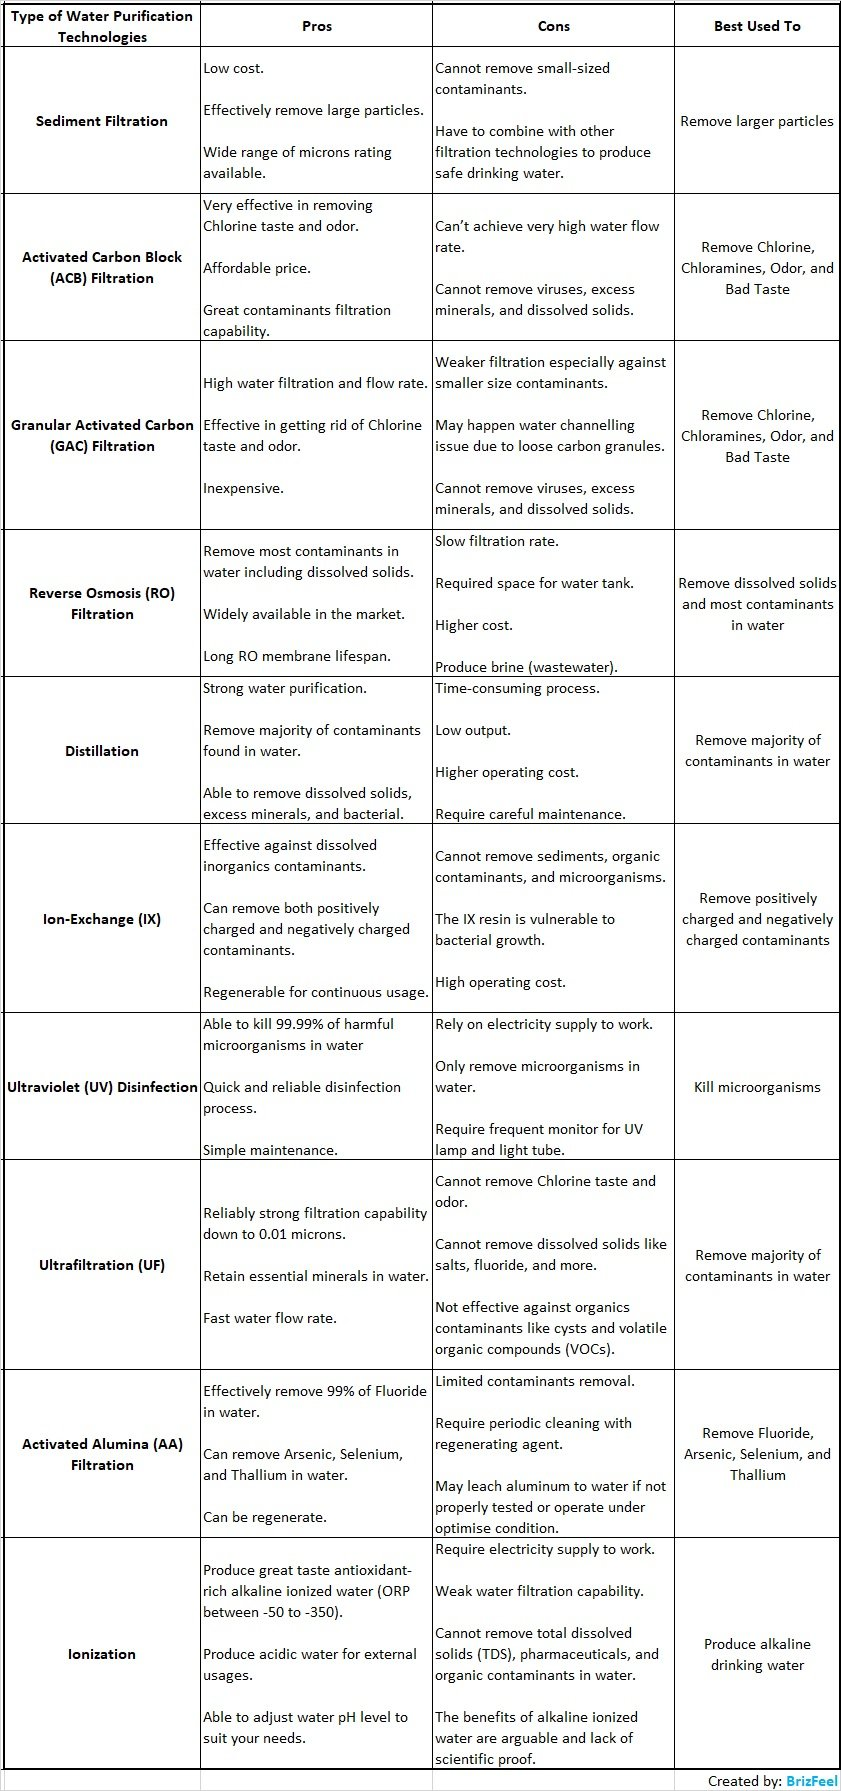 Comparison table of 10 types of water purification technologies